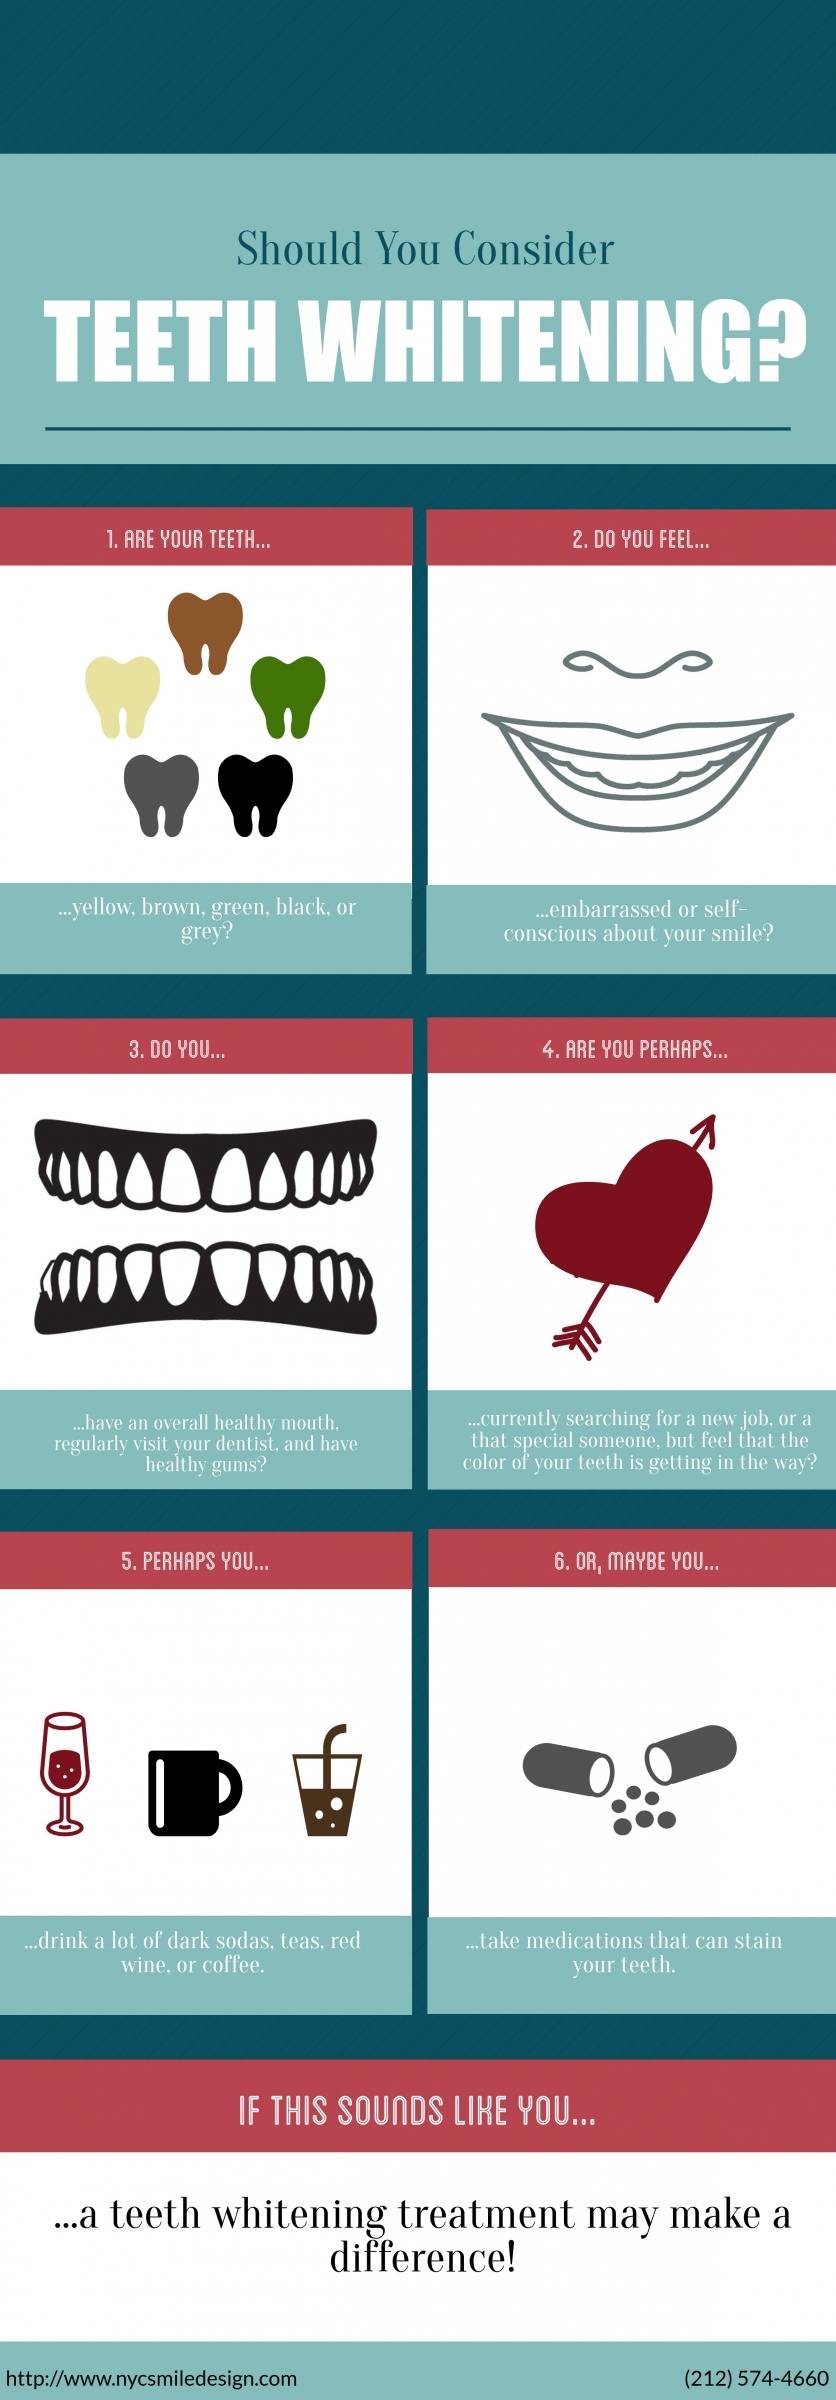 Teeth Whitening NYC Infographic